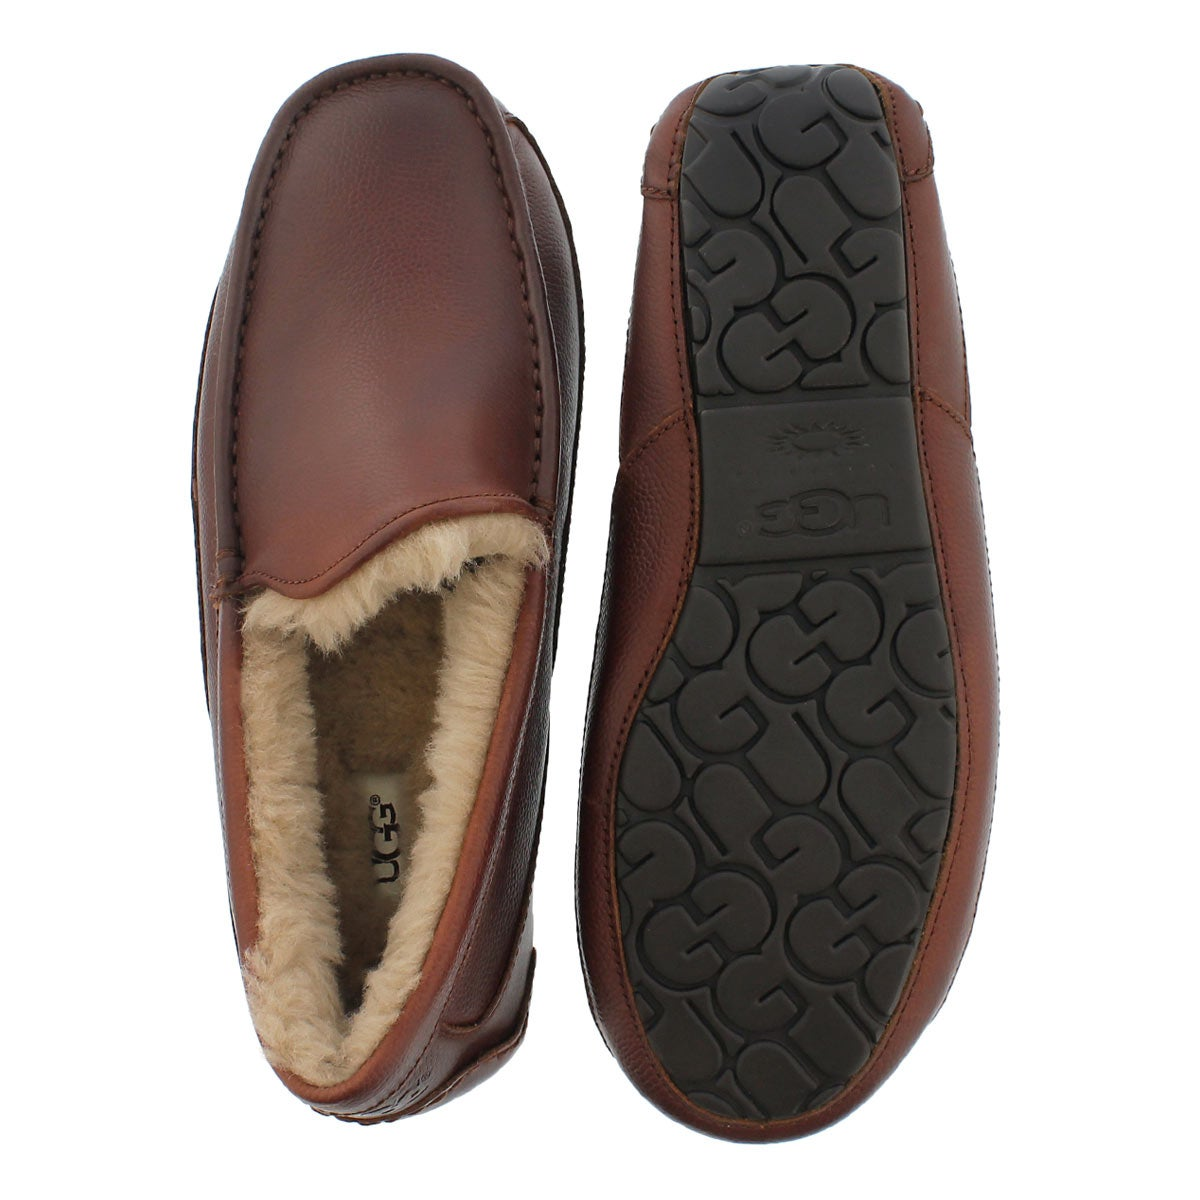 Mns Ascot Scotch Grain cognac moccasin